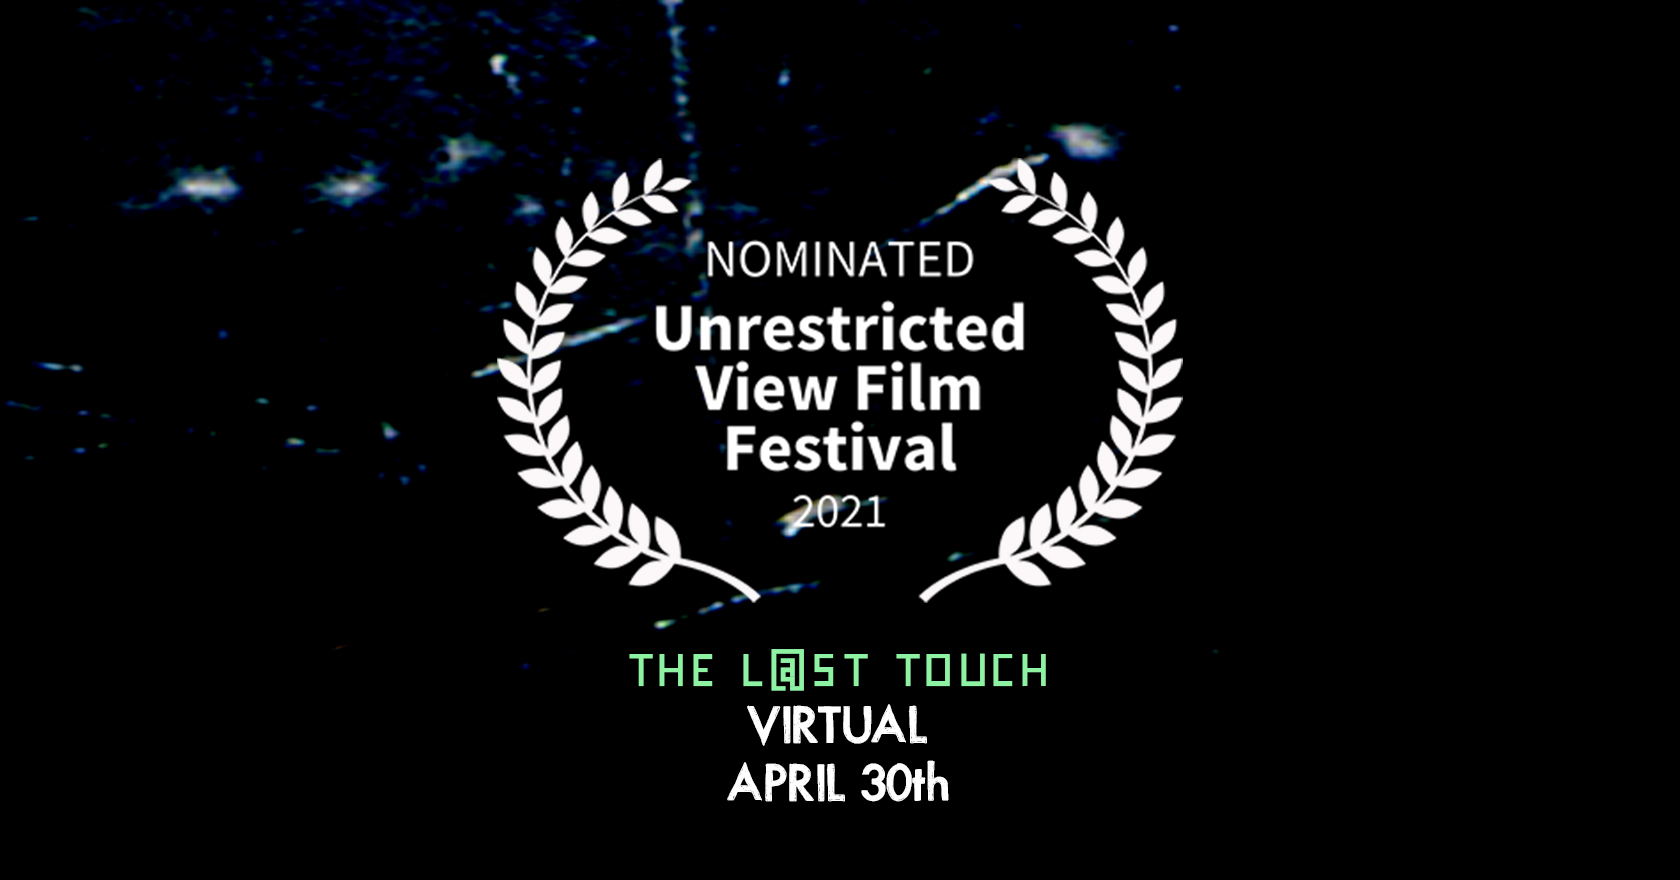 The Last Touch Nominated at UVFF (Unrestricted View Film Festival)!